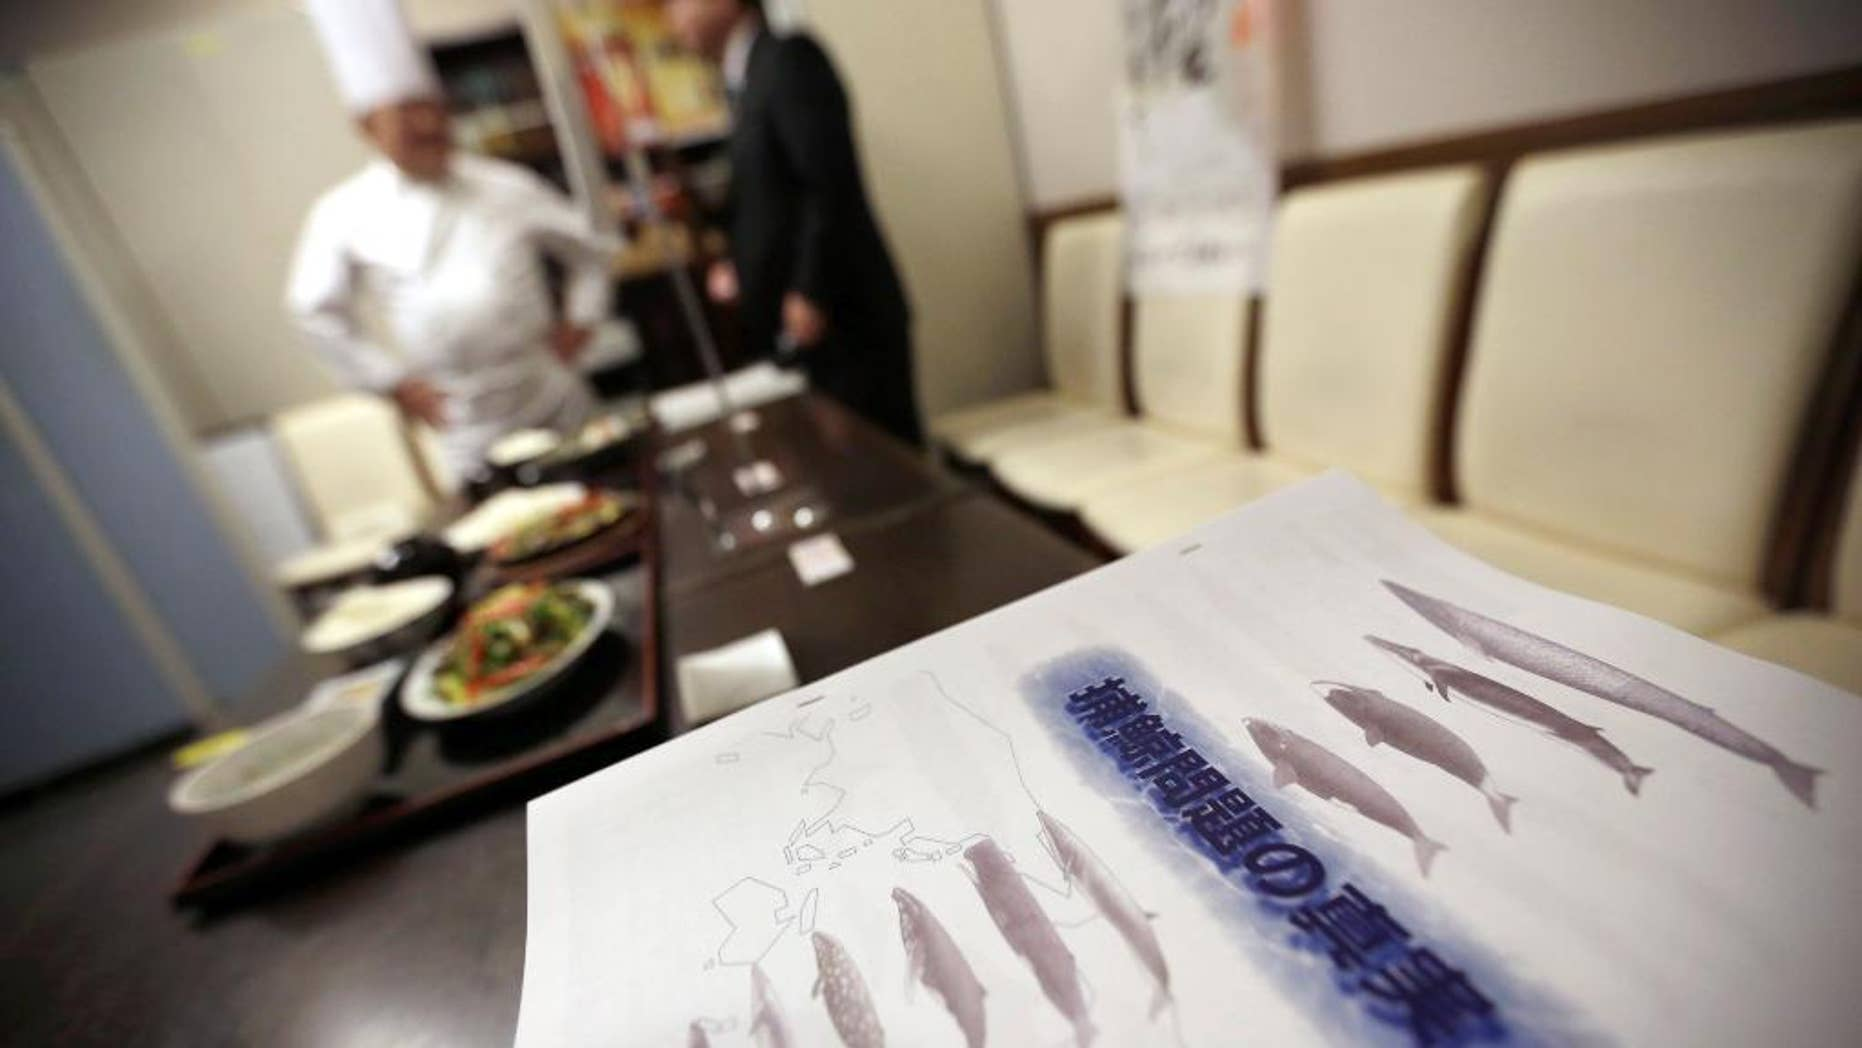 "FILE - In this Nov. 19, 2014 file photo, booklets titled ""The Truth of Whaling Problem"" are placed next to whale meat dishes on display at a cafeteria of Ministry of International Trade and Industry in Tokyo as it started to serve whale meat. Japan aims to resume whale hunts in the Antarctic later this year, even though the International Whaling Commission says Tokyo hasn't proven that the mammals need to be killed for research. The IWC's Scientific Committee said in a report Friday, June 19, 2015 that it wasn't able to determine whether lethal sampling is necessary for whale stock management and conservation. (AP Photo/Eugene Hoshiko, File)"